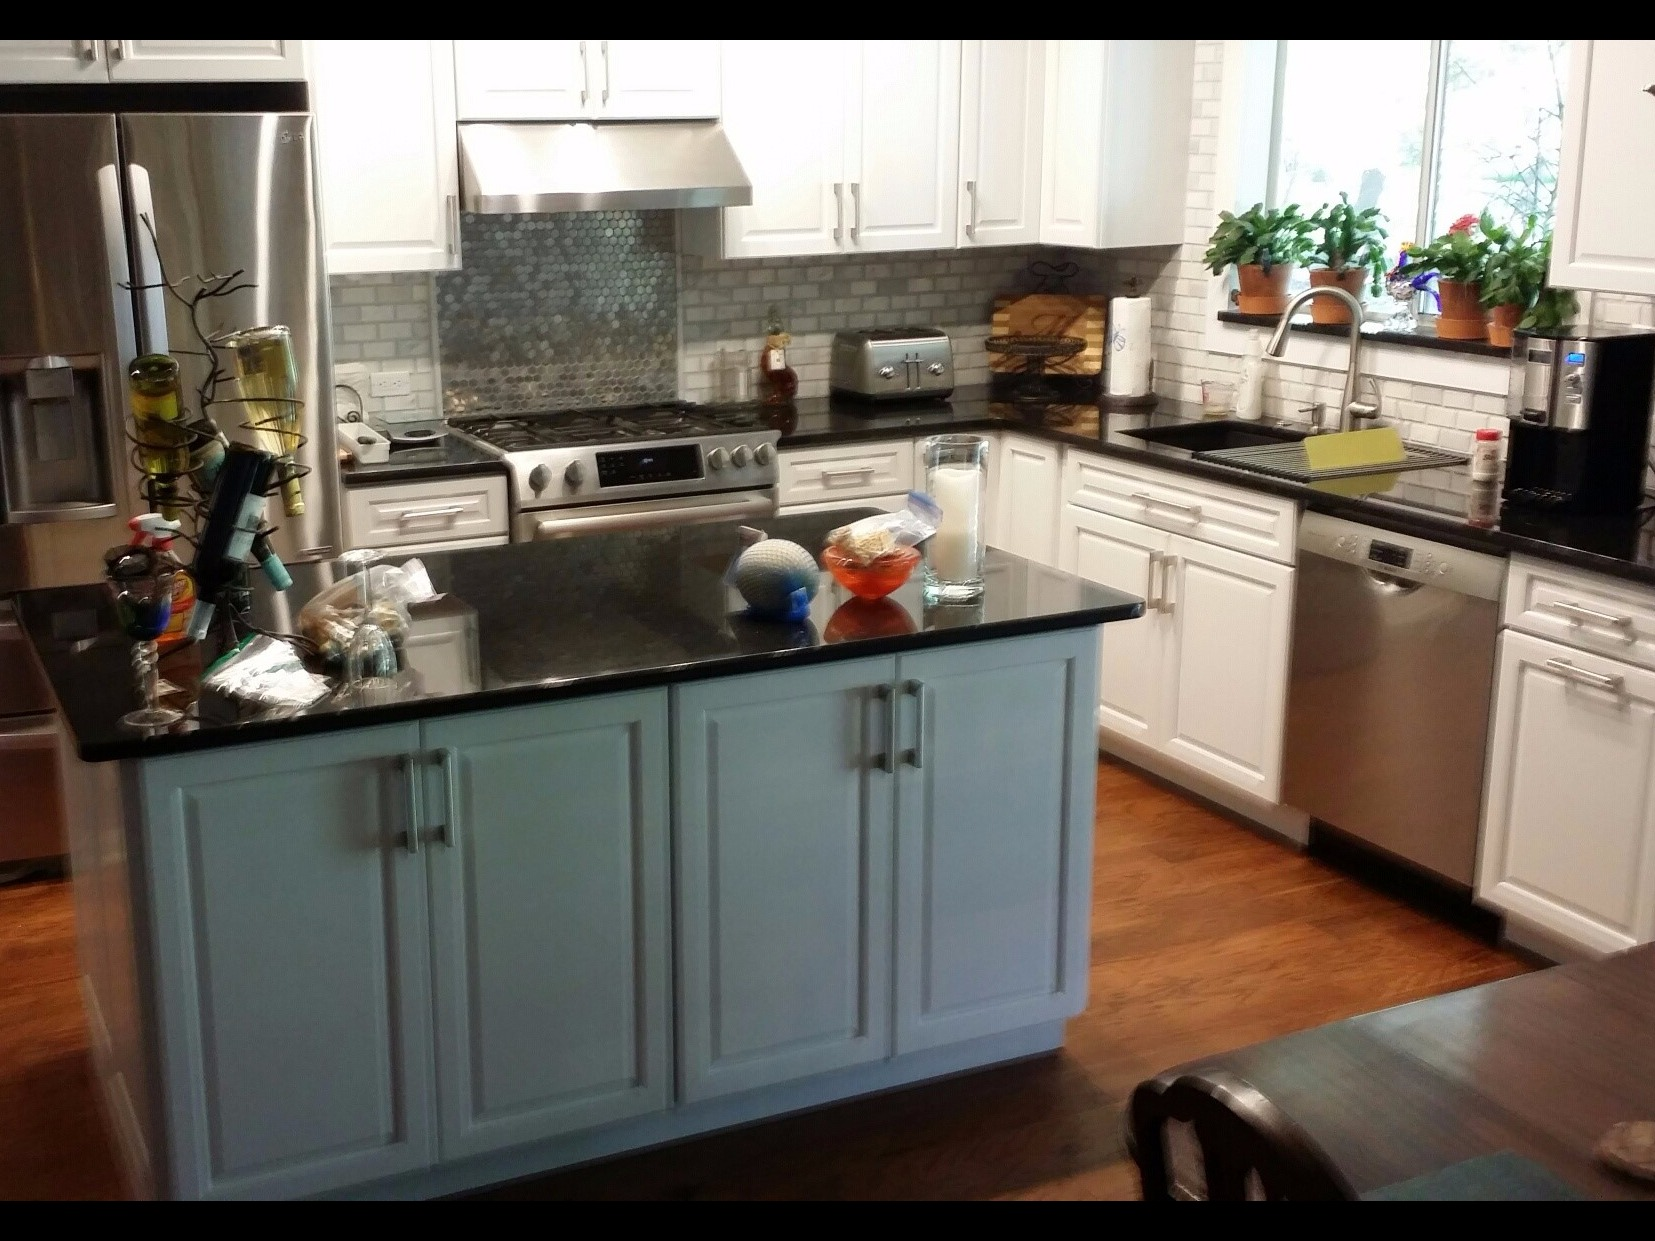 home remodeling, kitchen & bath design: waco, temple, killeen, tx